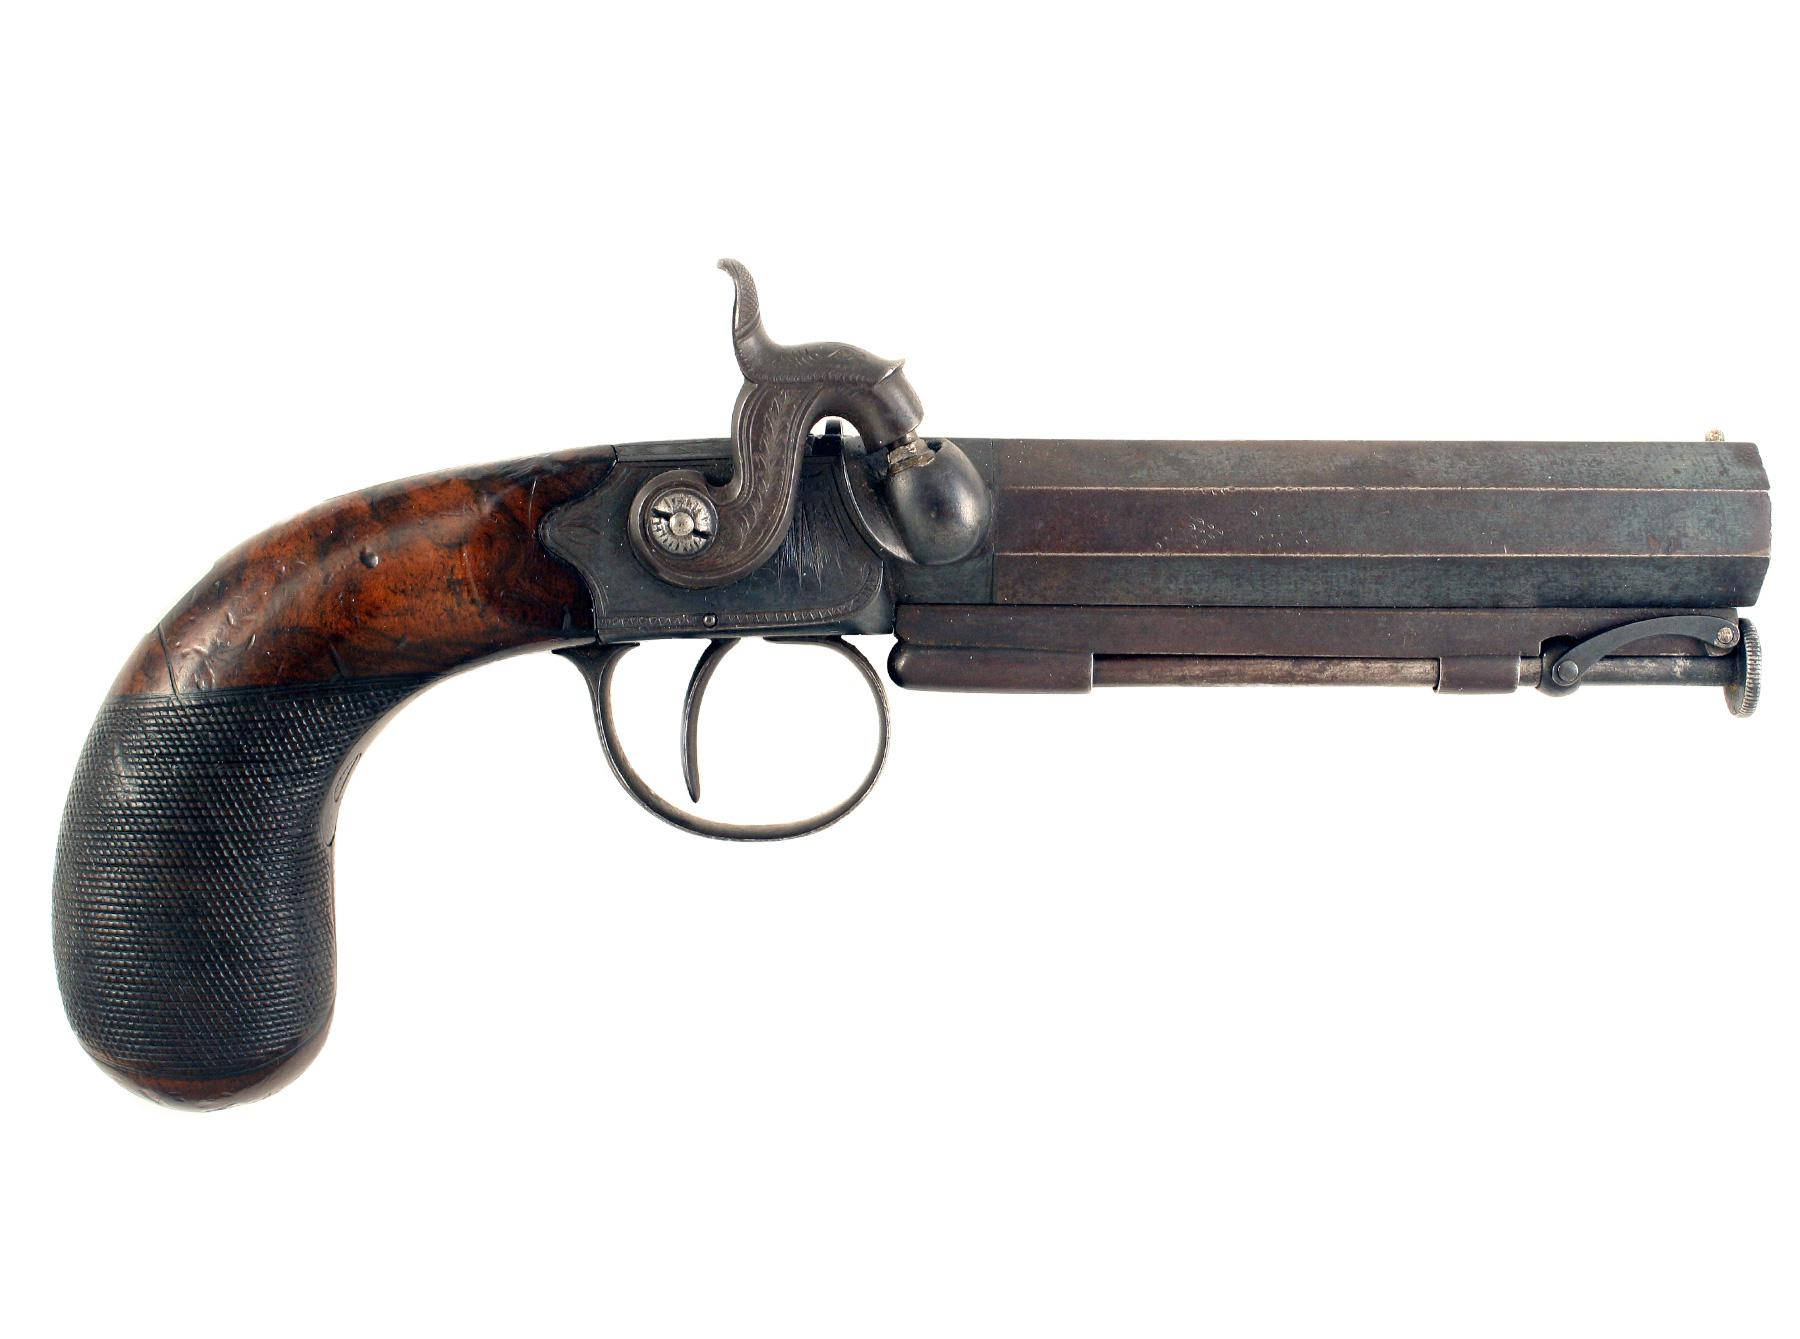 An Overcoat Pistol by Kavanagh of Dublin